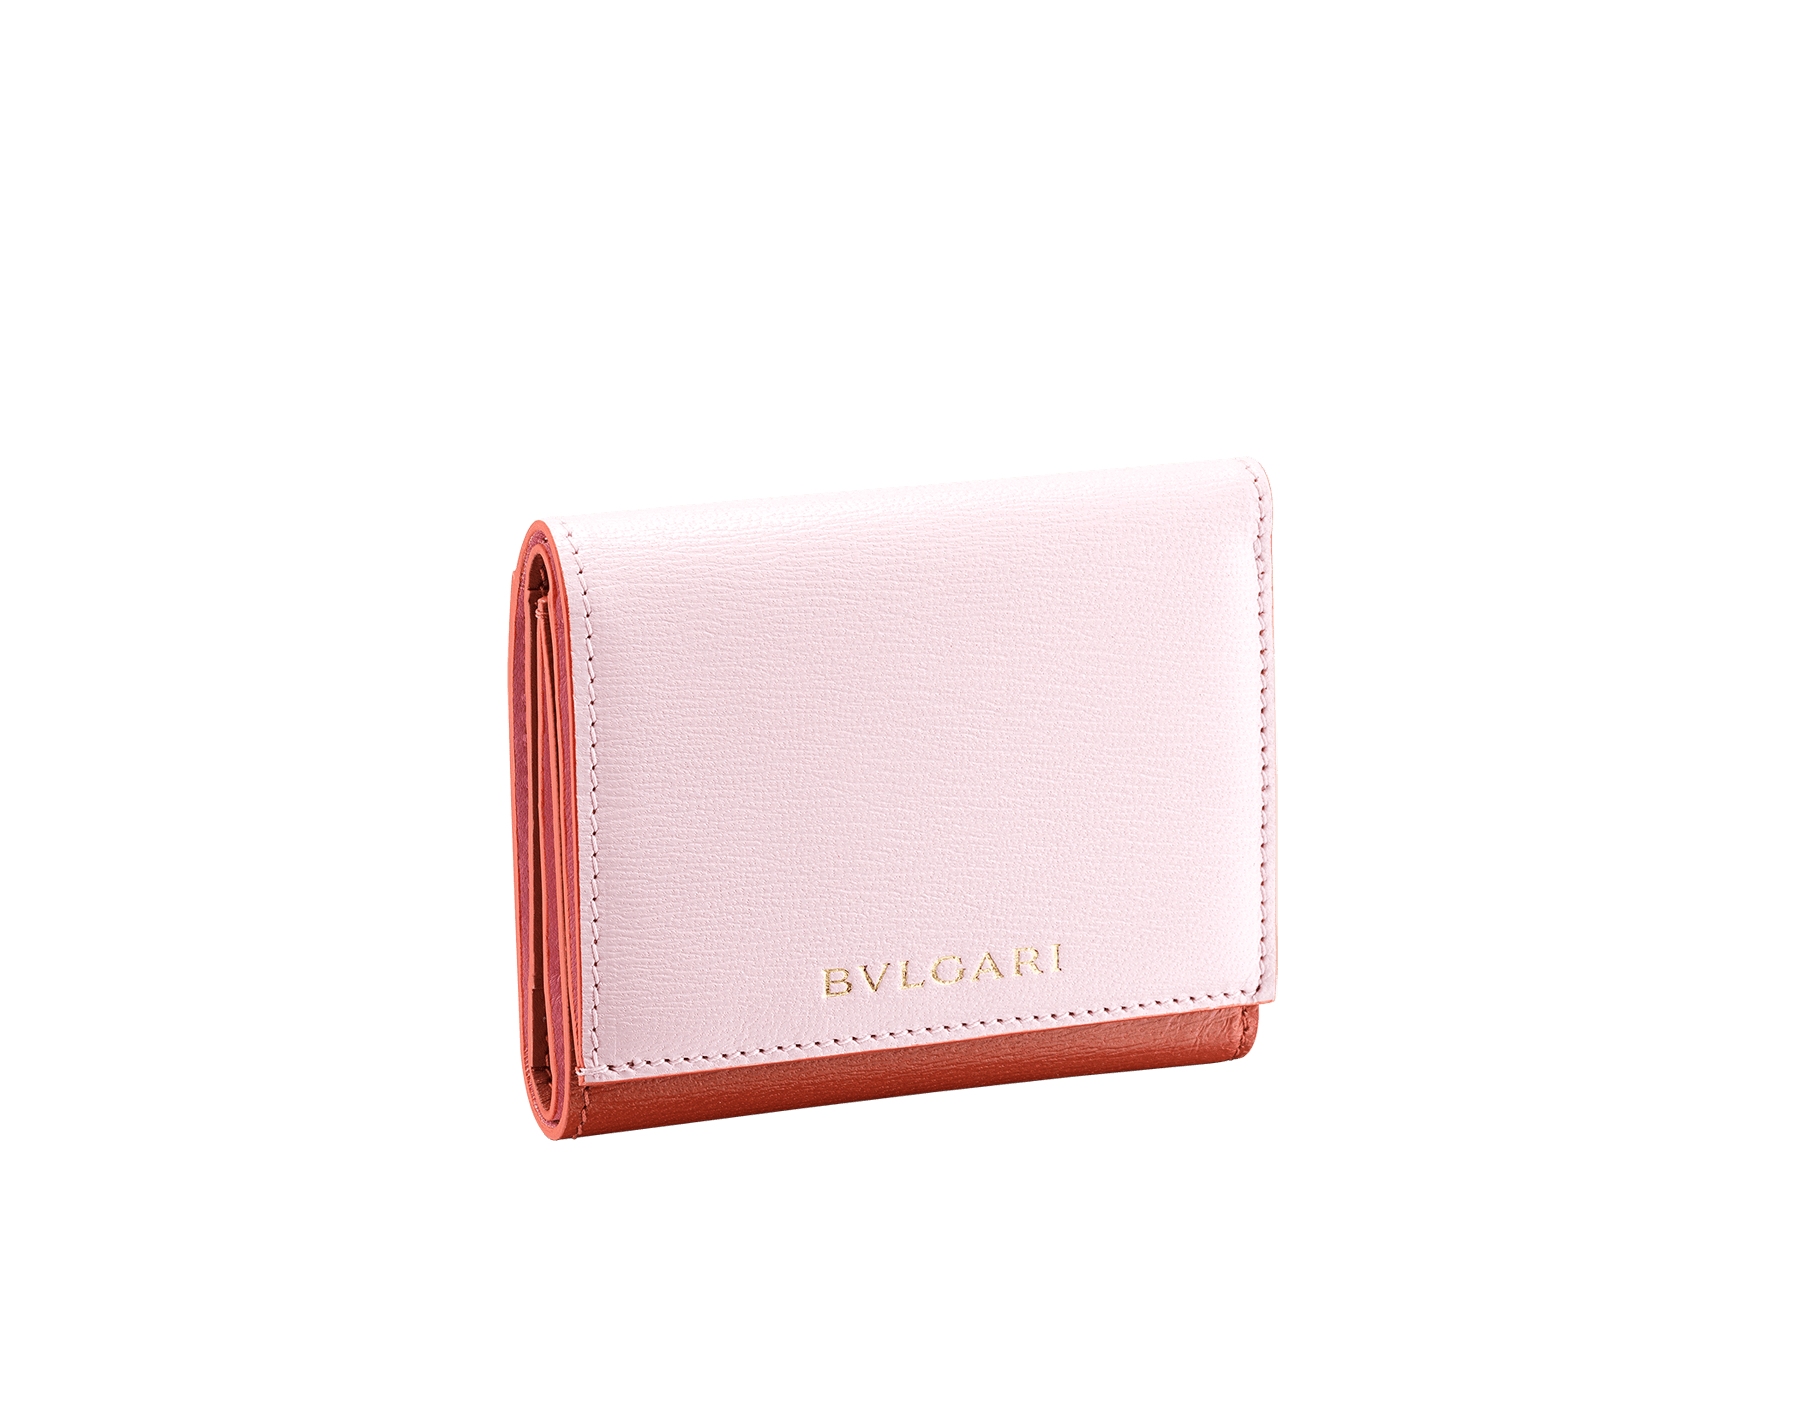 B.zero1 compact wallet in rosa di francia and imperial topaz goatskin. Iconic B.zero1 zip in light gold plated brass and two press stud closures. 289085 image 1